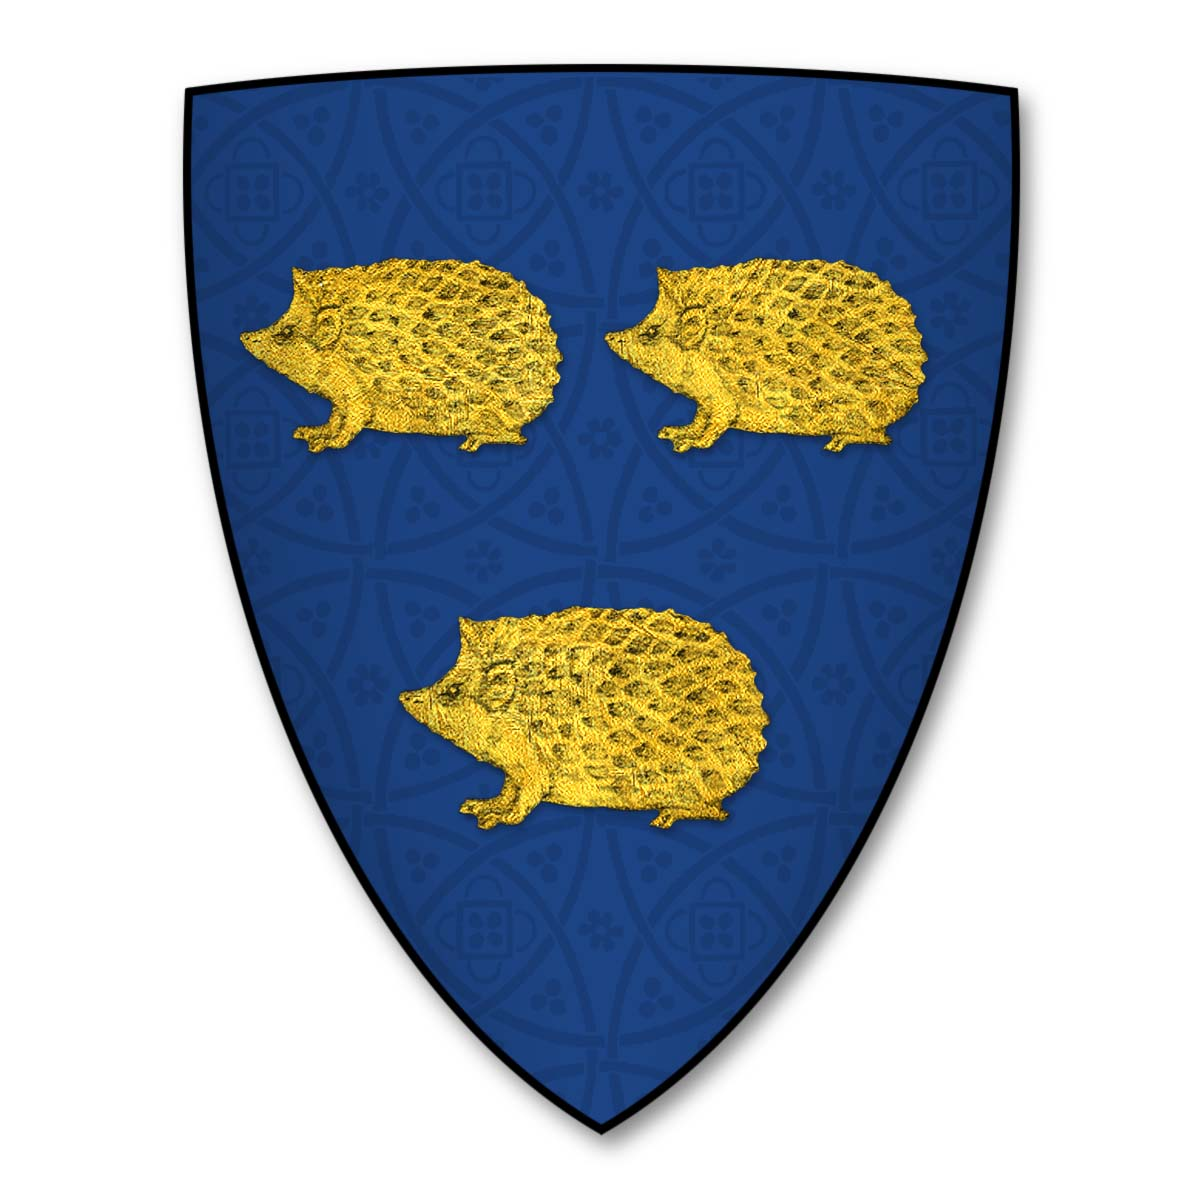 Abrahall Family Coat of Arms